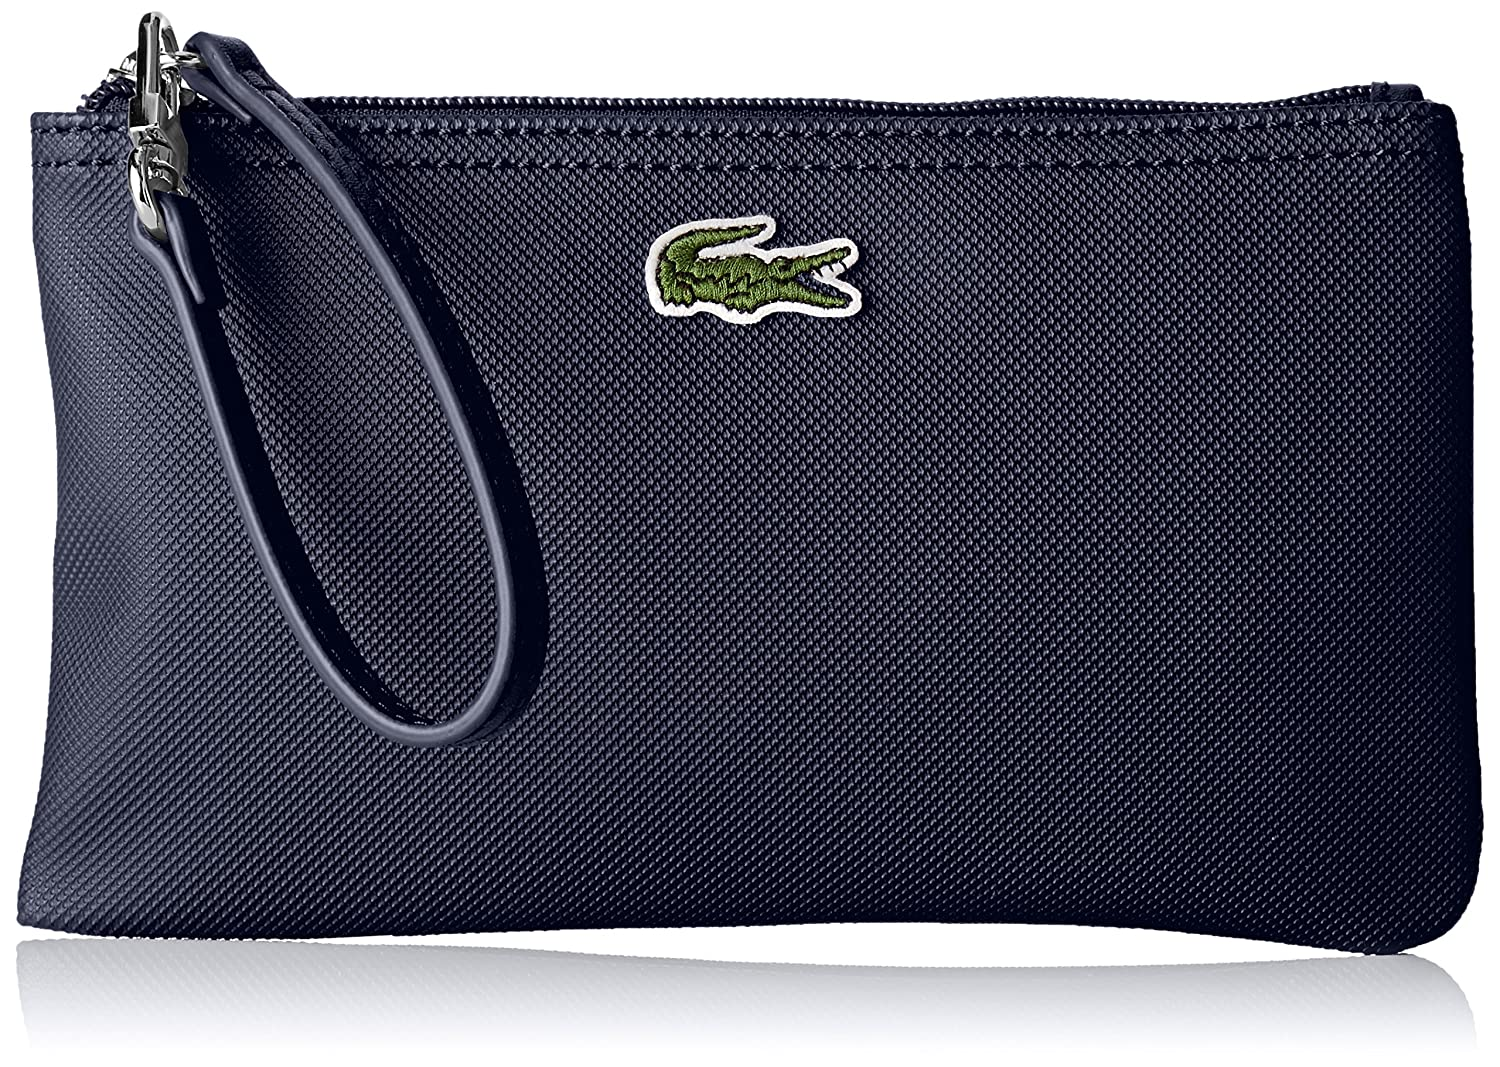 Amazon.com: Lacoste Womens Clutch Bag - Eclipse Navy: Shoes